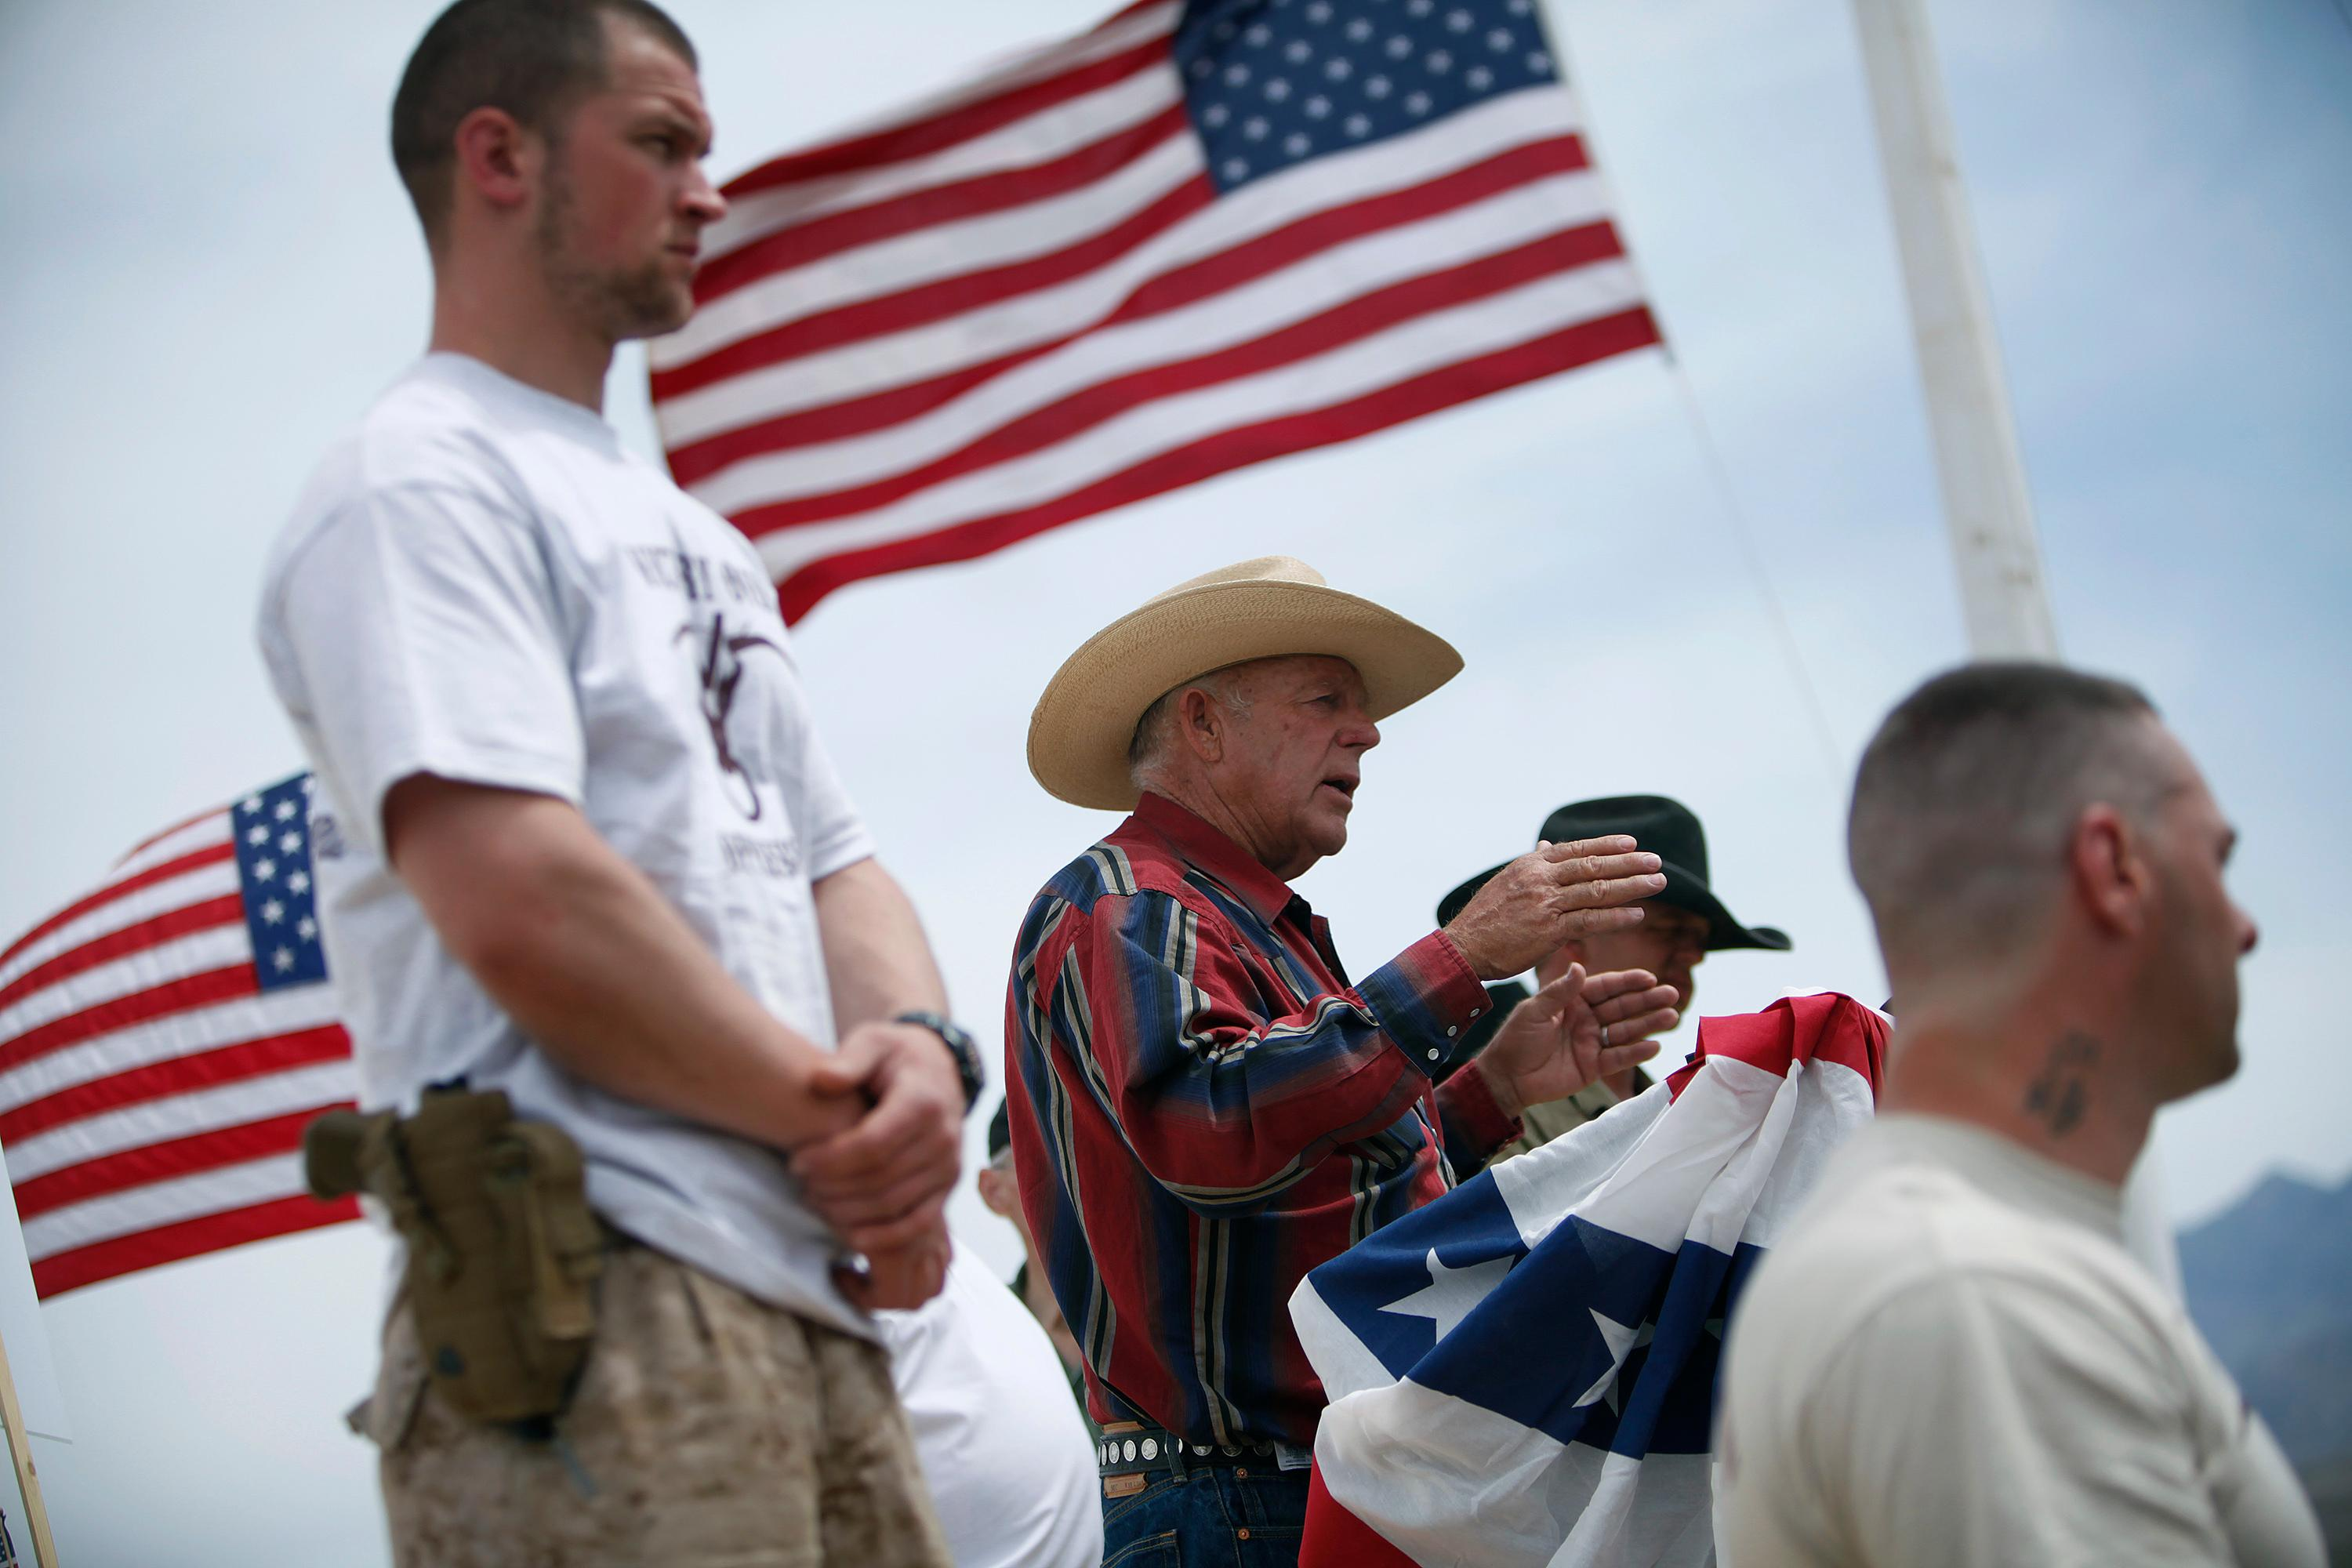 FILE - In this April 18, 2014, file photo, flanked by armed supporters, rancher Cliven Bundy speaks at a protest camp near Bunkerville, Nev. A U.S. judge who declared a mistrial two weeks ago could on Monday, Jan. 8, 2018, kill the much-watched criminal prosecution of the Nevada rancher accused of leading an armed uprising against federal authorities in April 2014. Chief U.S. District Judge Gloria Navarro's decision in Las Vegas is sure to echo among states' rights advocates in Western states where the federal government controls vast expanses that some people want to remain unused and others want open to grazing, mining and oil and gas drilling. (John Locher/Las Vegas Review-Journal via AP, File)